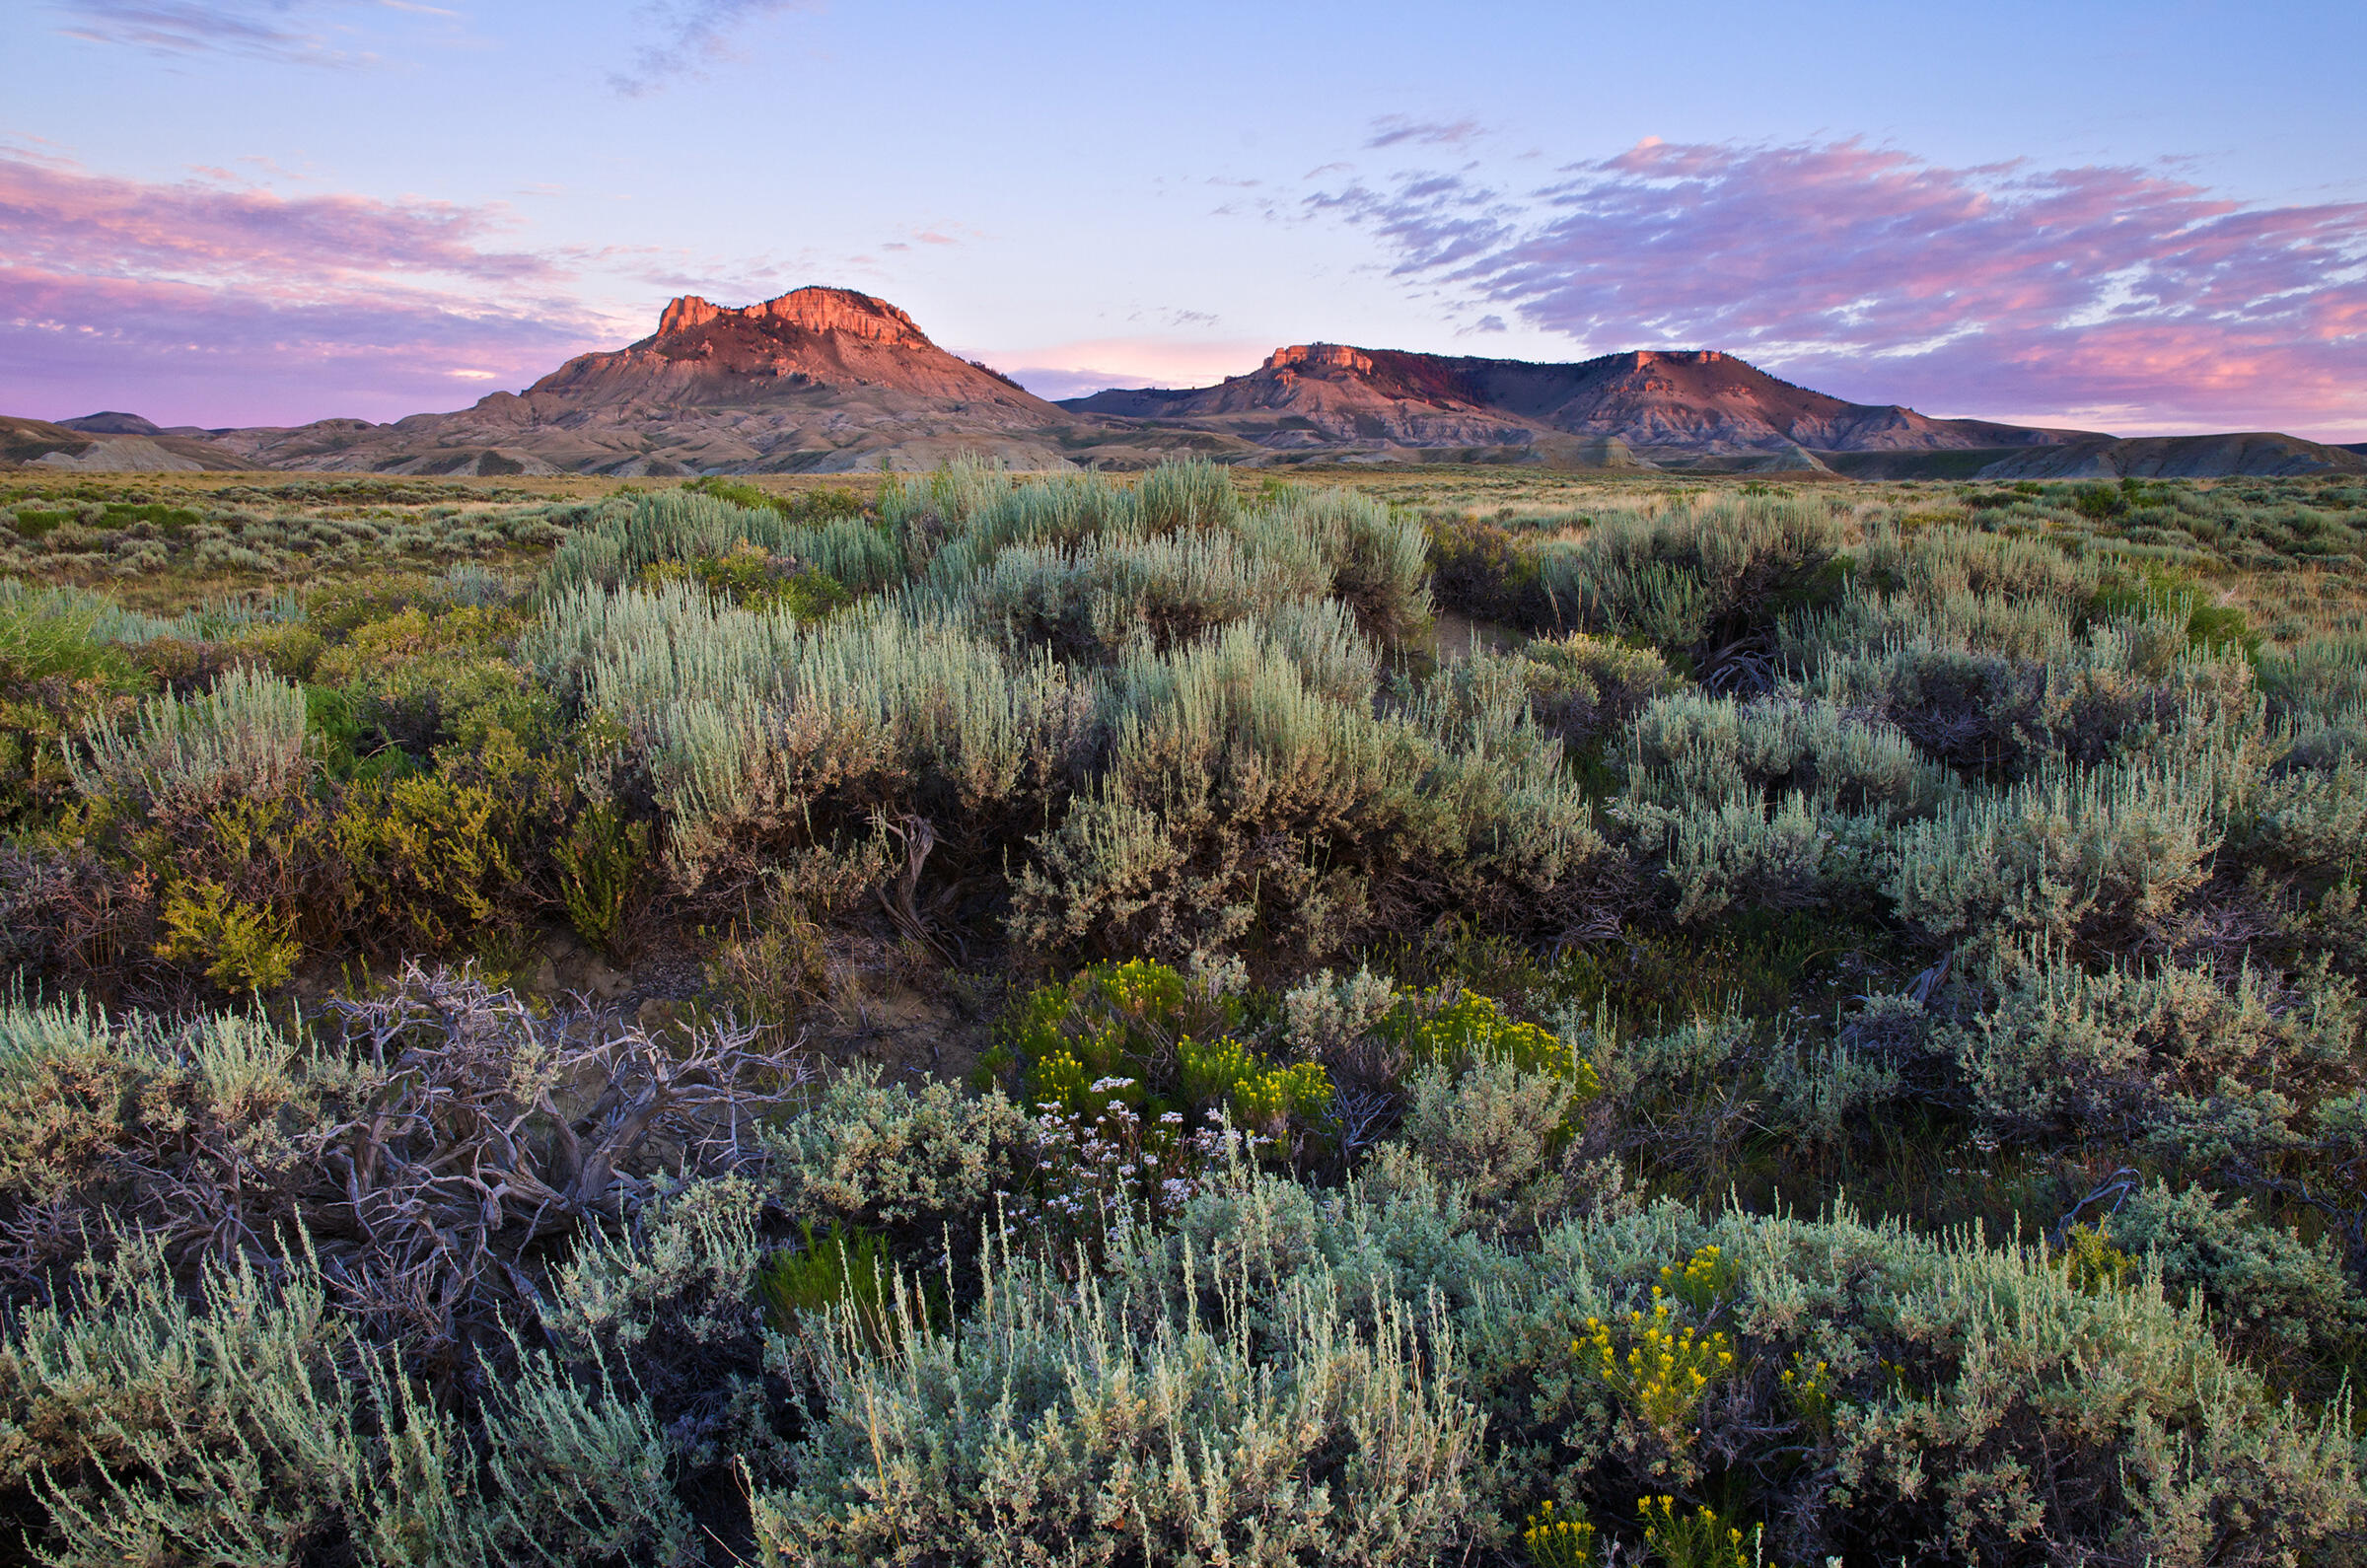 Sunrise lights the buttes of the Red Desert. This area is typical of the sagebrush ecosystem and important for many endemic species. Oregon Buttes Wilderness Study Area, Wyoming. Dave Showalter